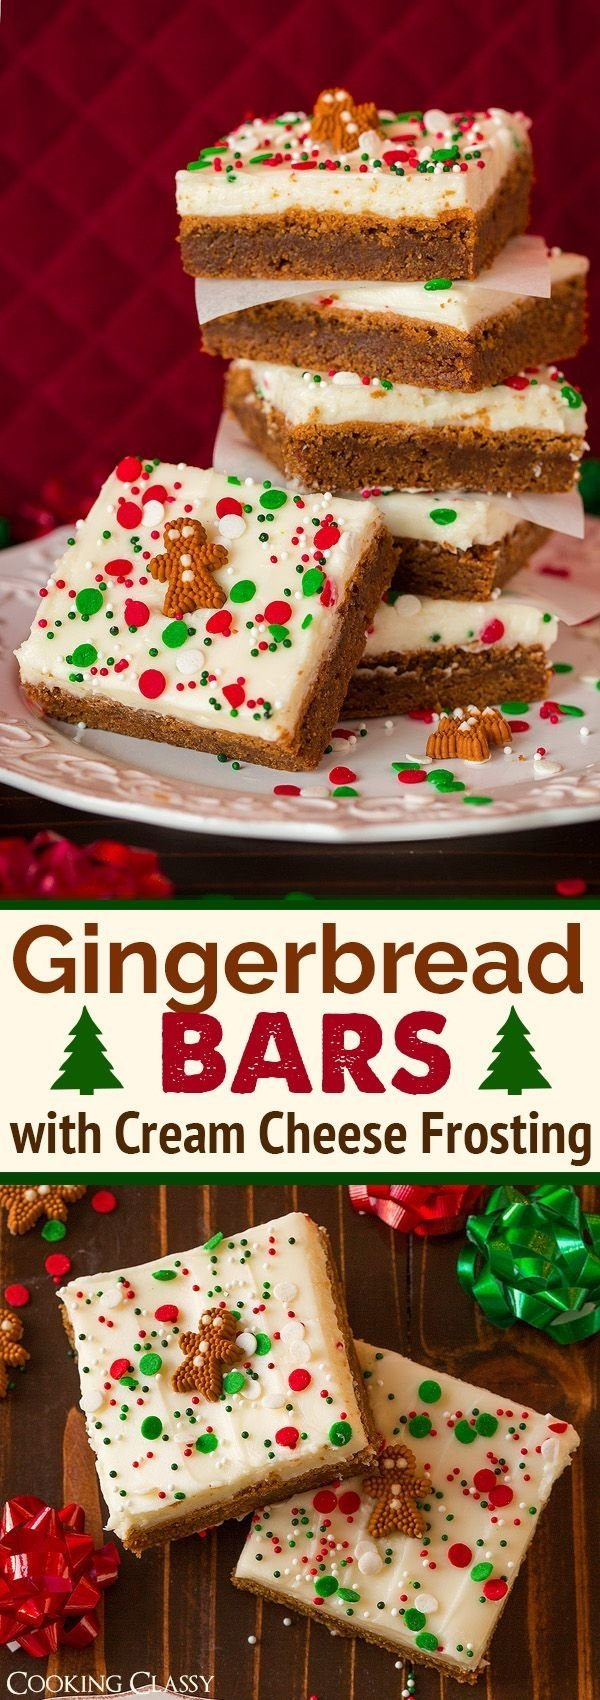 10 Beautiful Christmas Party Food Ideas For Adults 611 best christmas recipes images on pinterest cookies dessert 1 2021